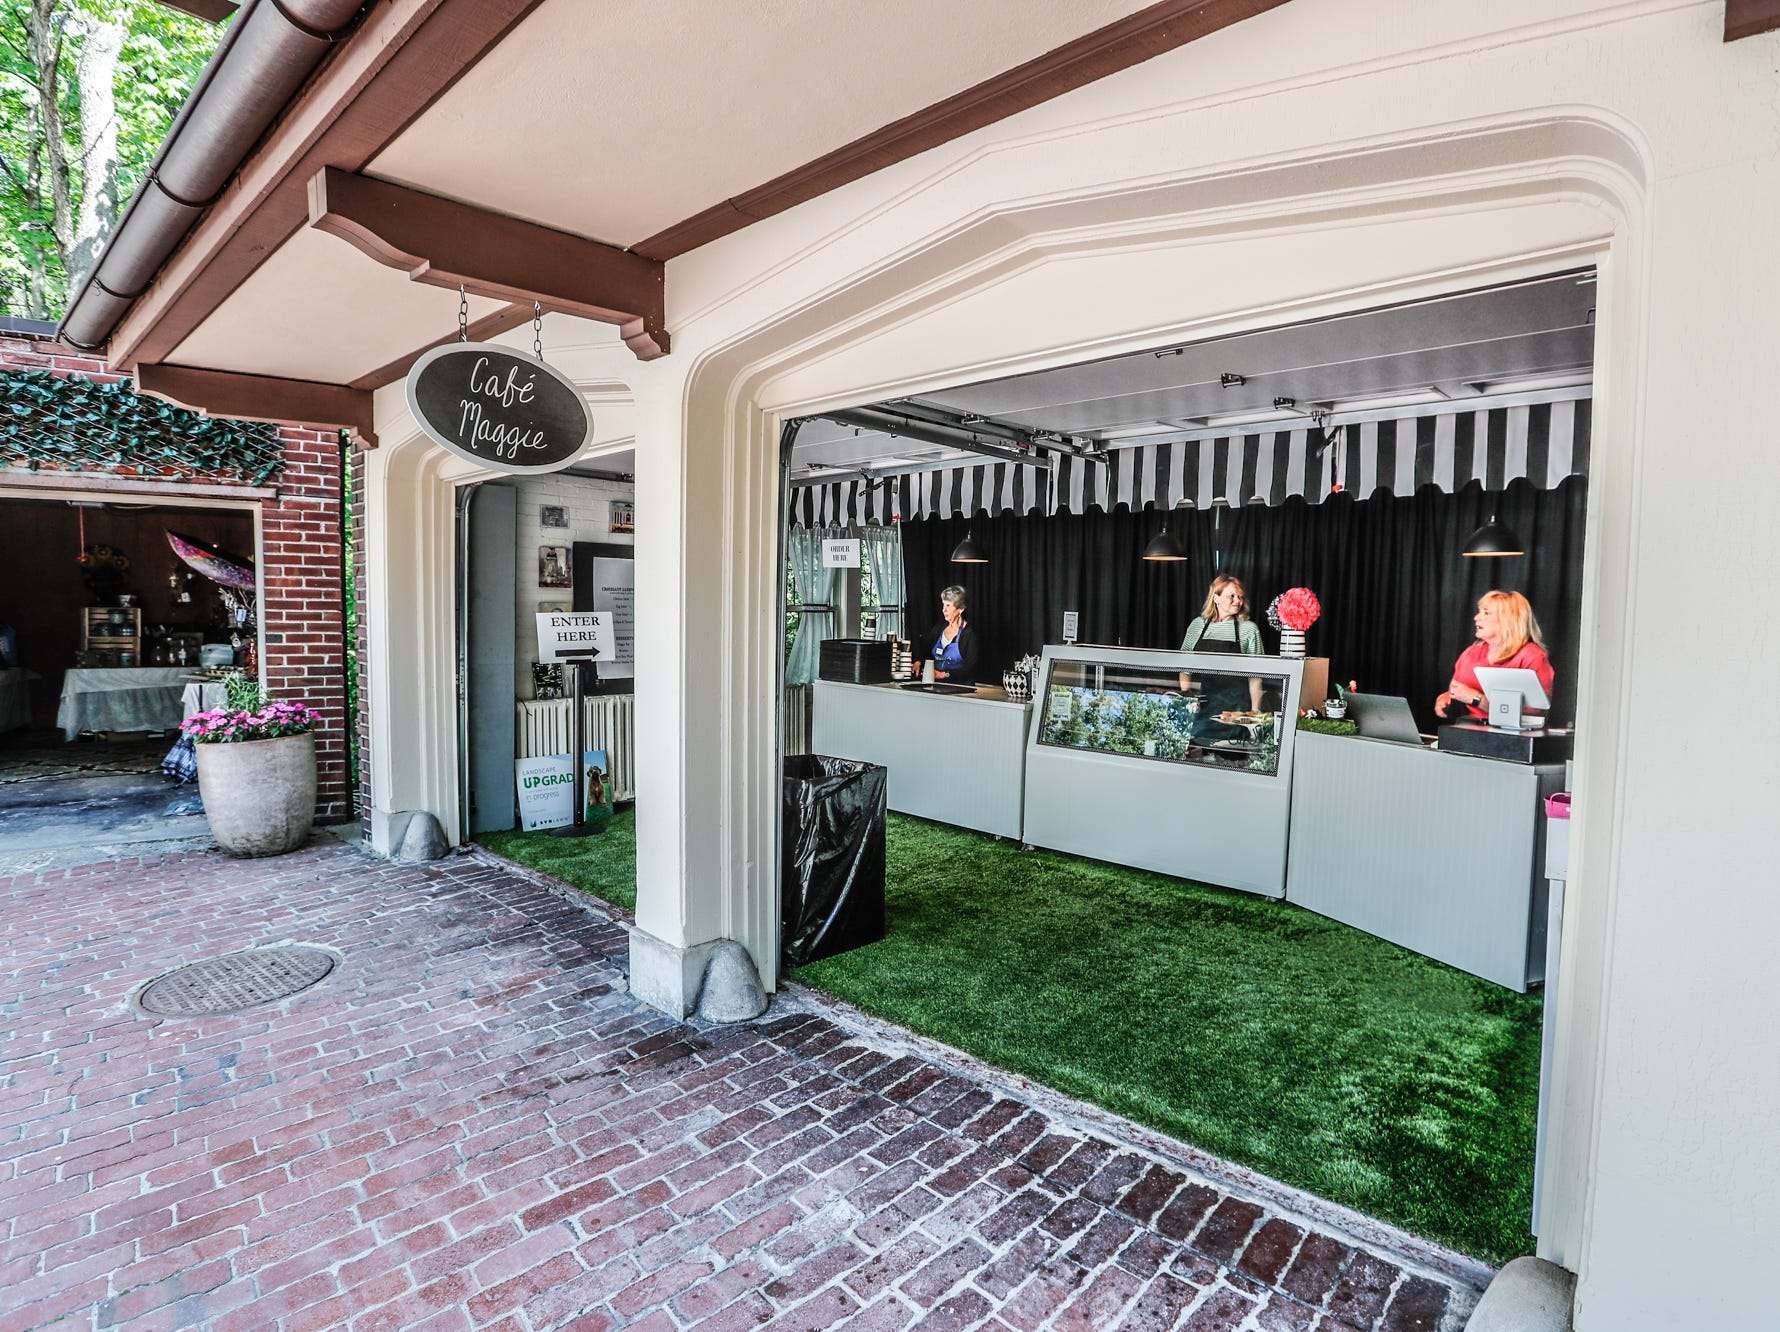 Cafe Maggie, located in the rear of the 58th annual St. Margaret's Hospital Guild Decorators' Show House and Gardens, 58th annual Decorator's Show House and Gardens, located at 4160 Washington Blvd., Indianapolis, on Wednesday, May 8, 2019.